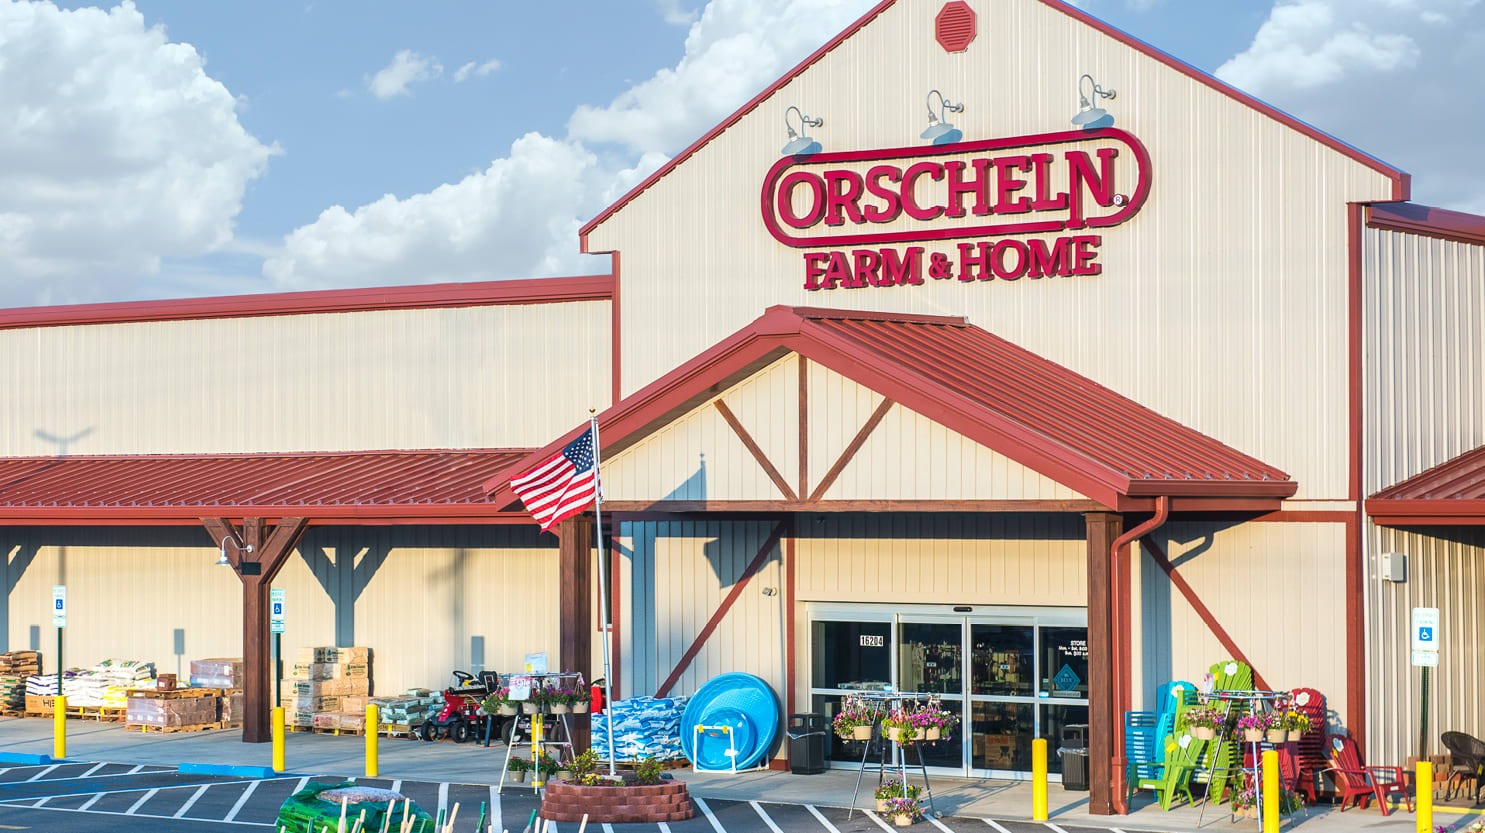 Front view of Orscheln Farm & Home Store in Chillicothe, Missouri 64601